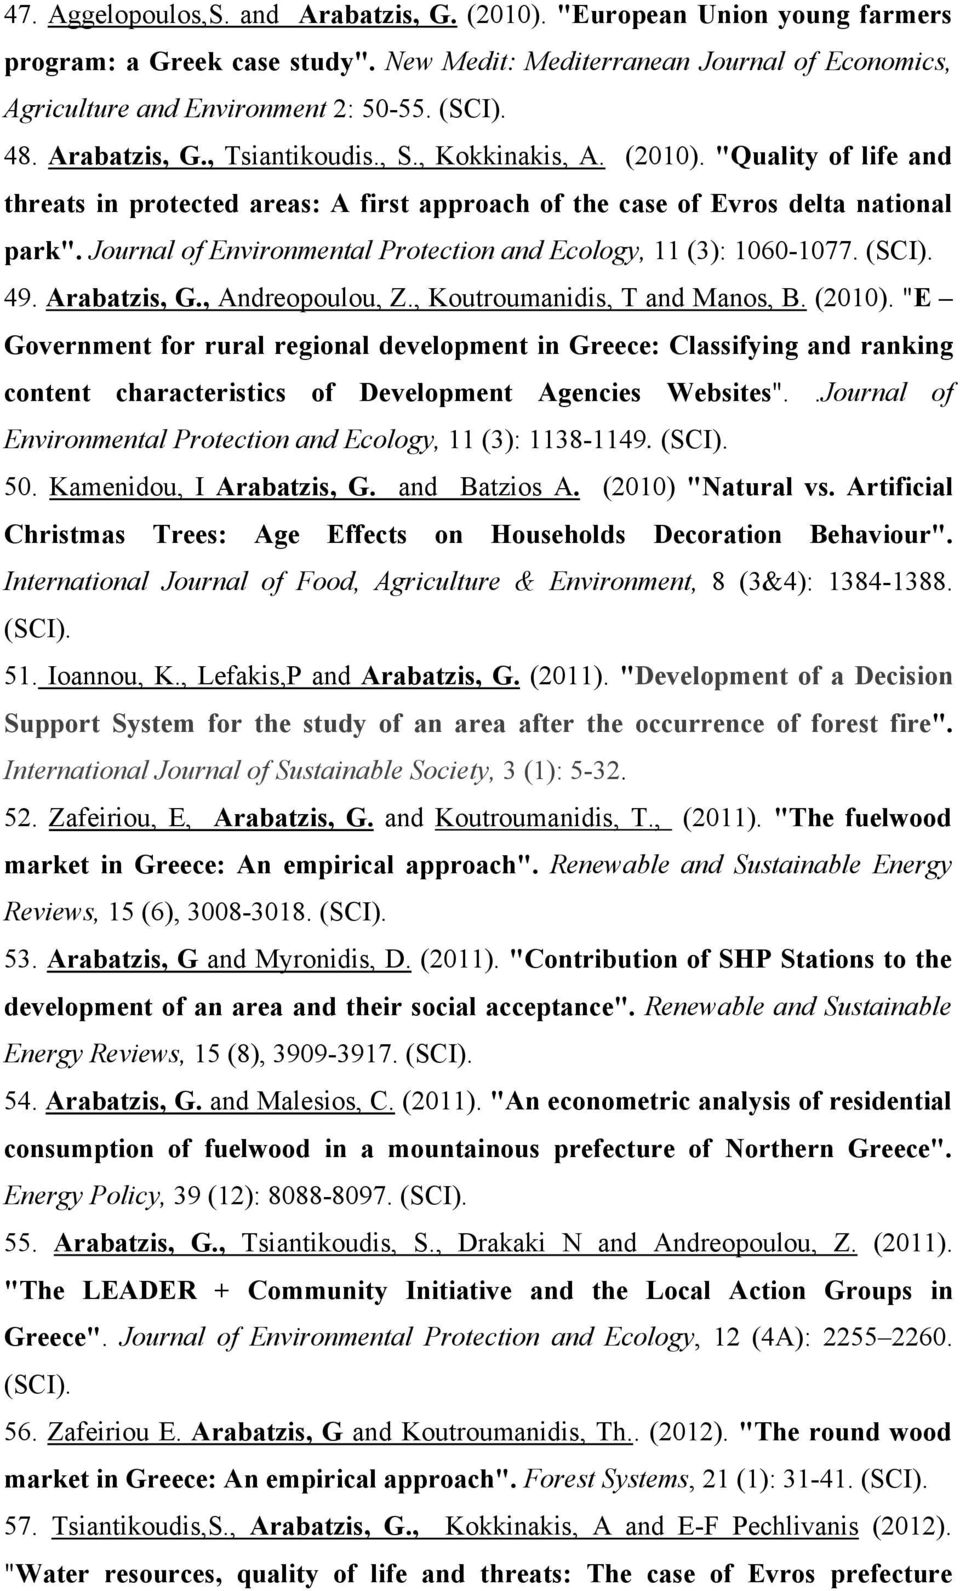 Journal of Environmental Protection and Ecology, 11 (3): 1060-1077. (SCI). 49. Arabatzis, G., Andreopoulou, Z., Koutroumanidis, T and Manos, Β. (2010).